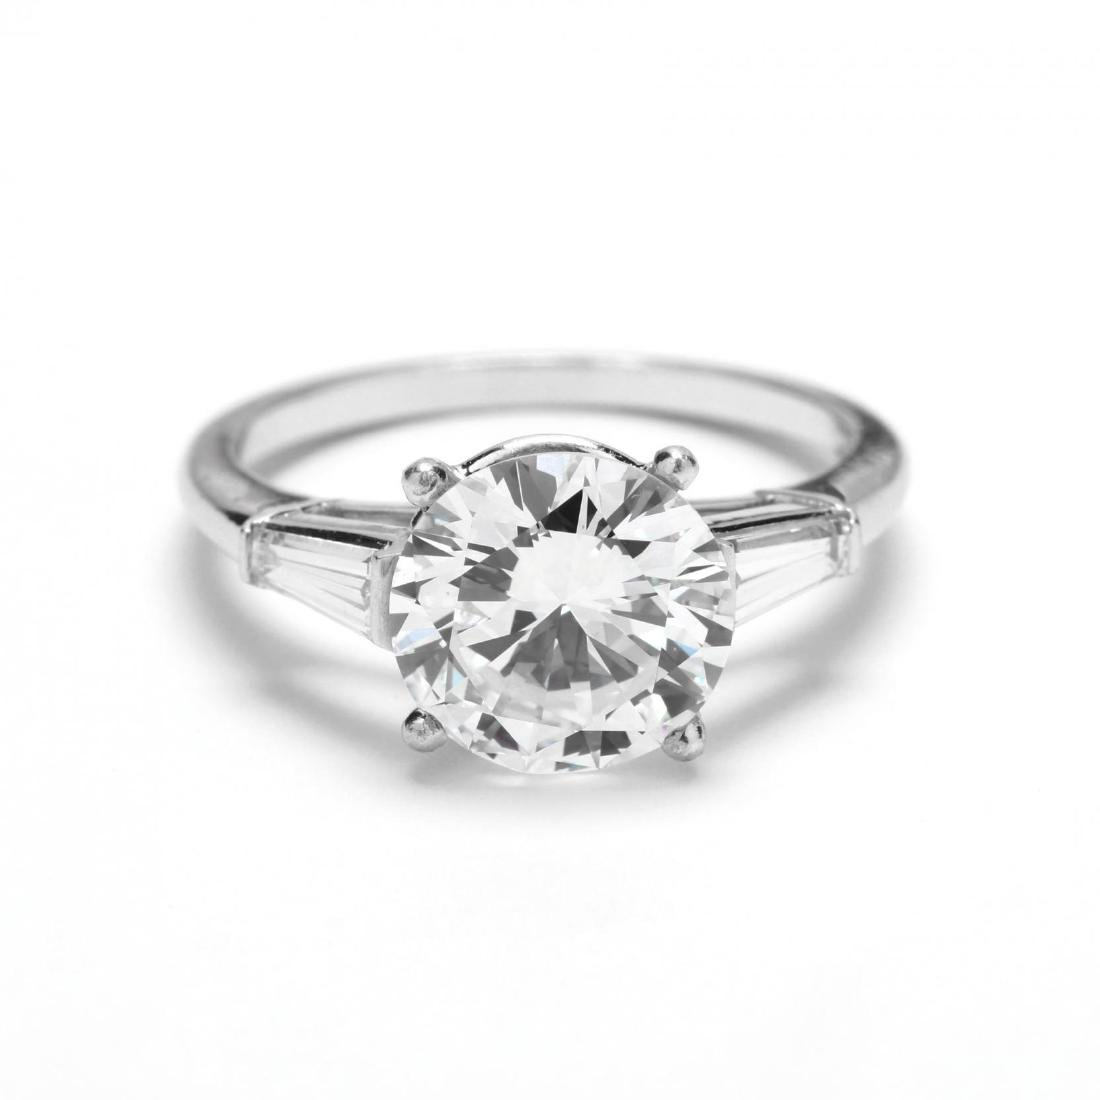 Unmounted Round Brilliant Cut Diamond with Platinum and